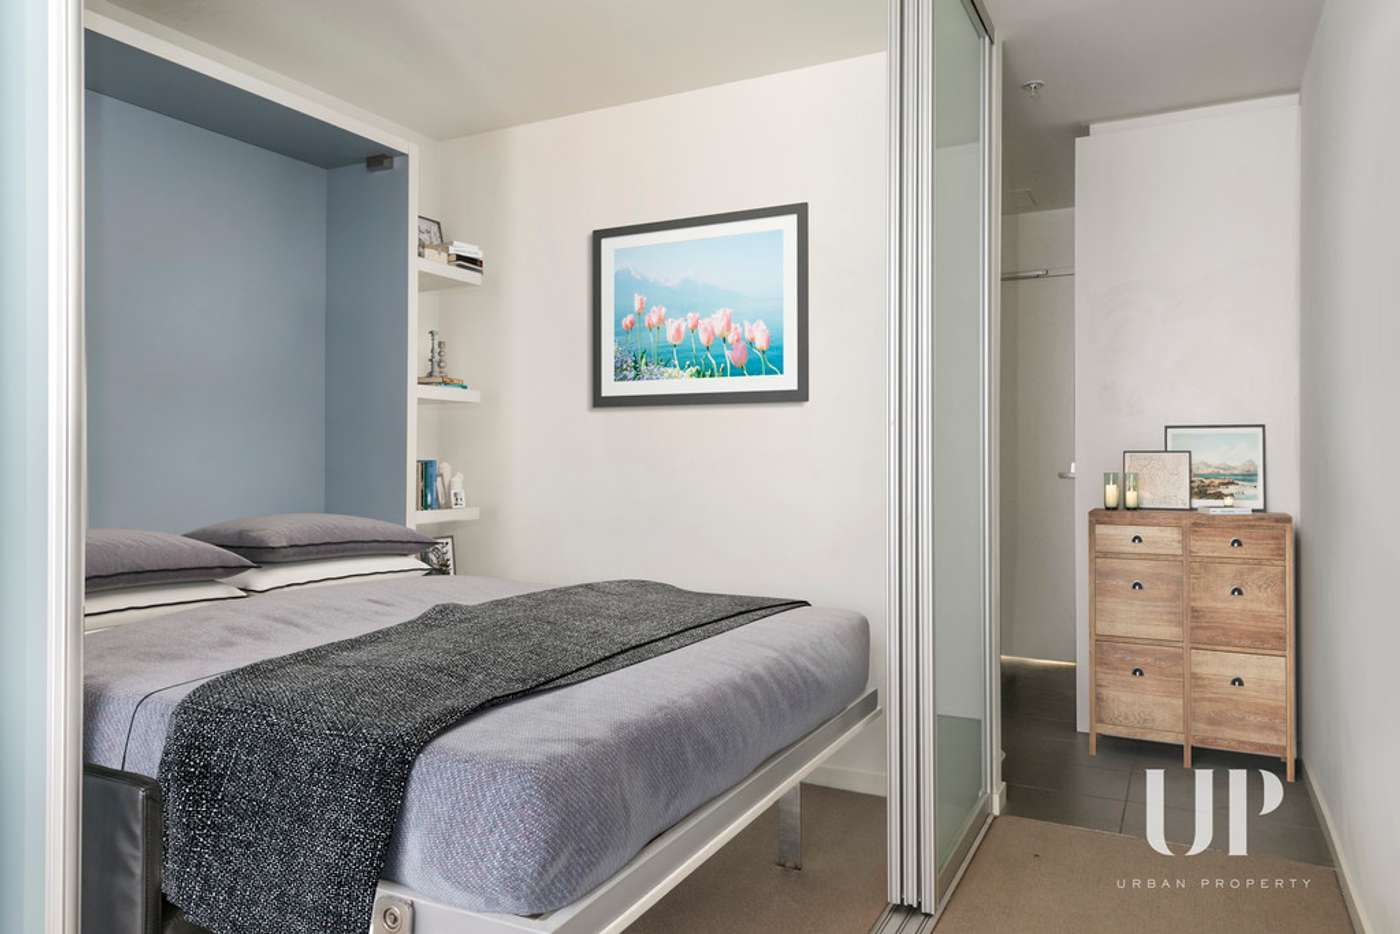 Main view of Homely apartment listing, 1702/243 Franklin Street, Melbourne VIC 3000